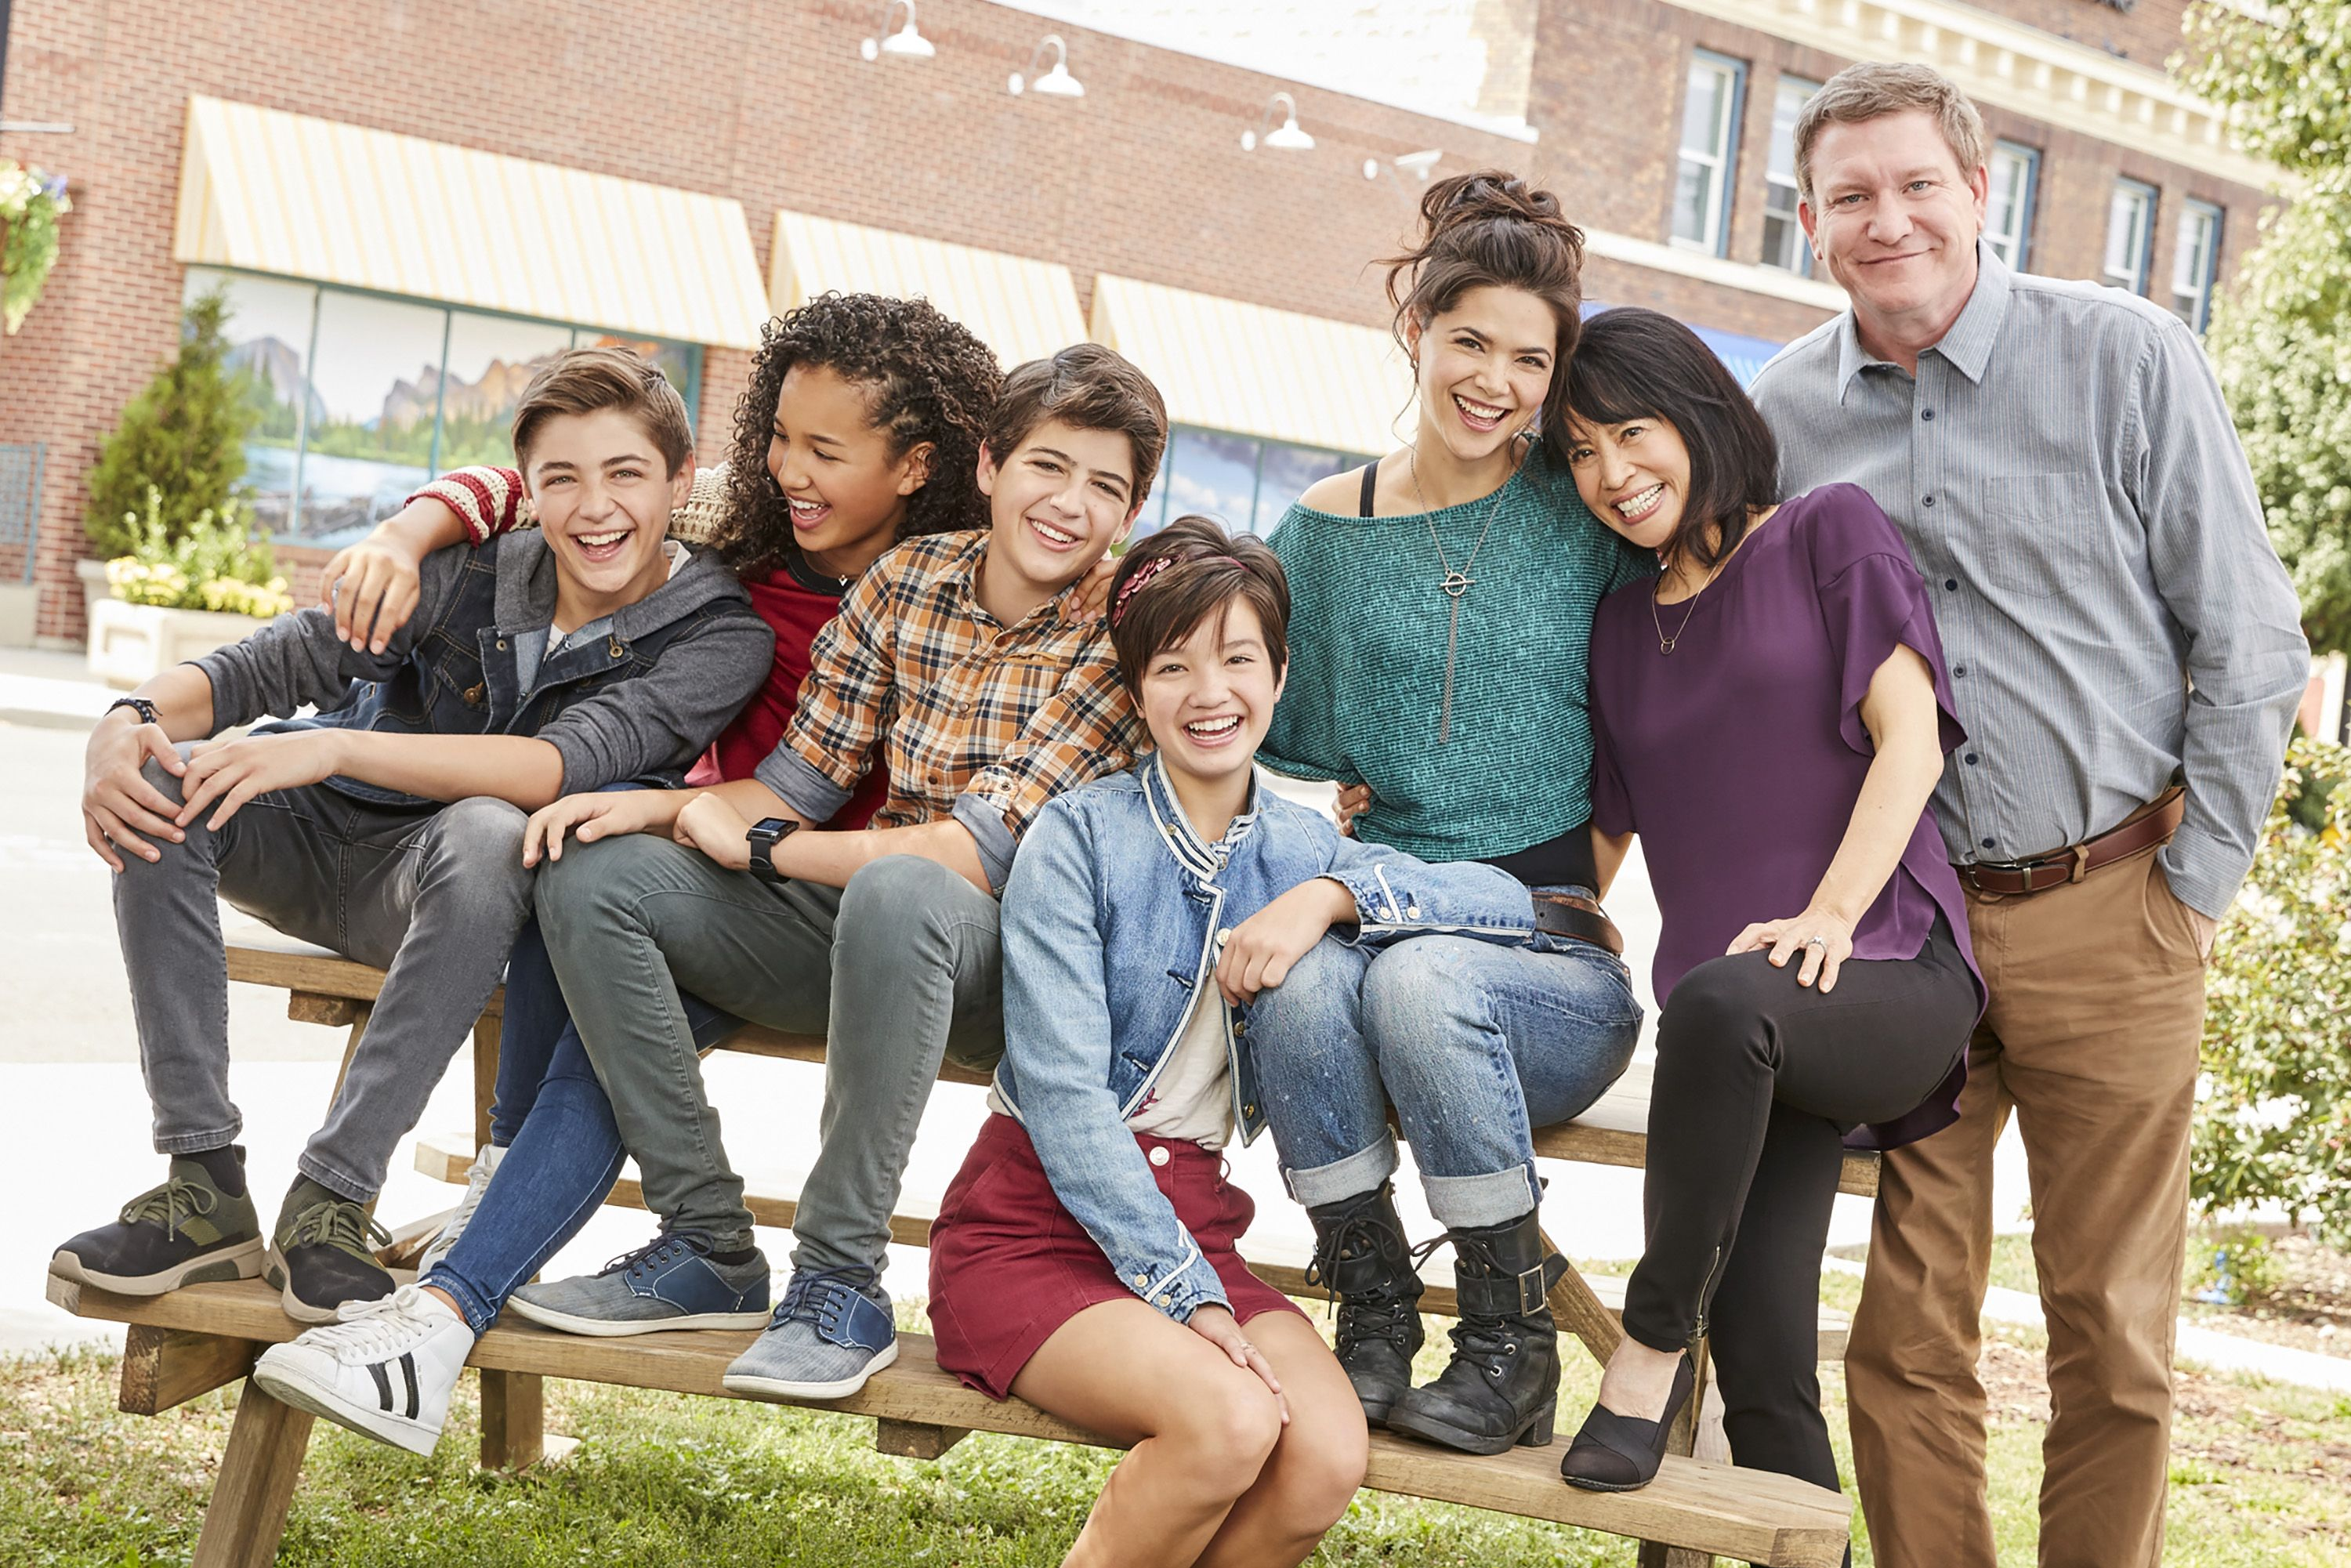 Andi Mack Cast On Their Favorite Season 2 Moments Best Scenes From Disney S Andi Mack Season 2